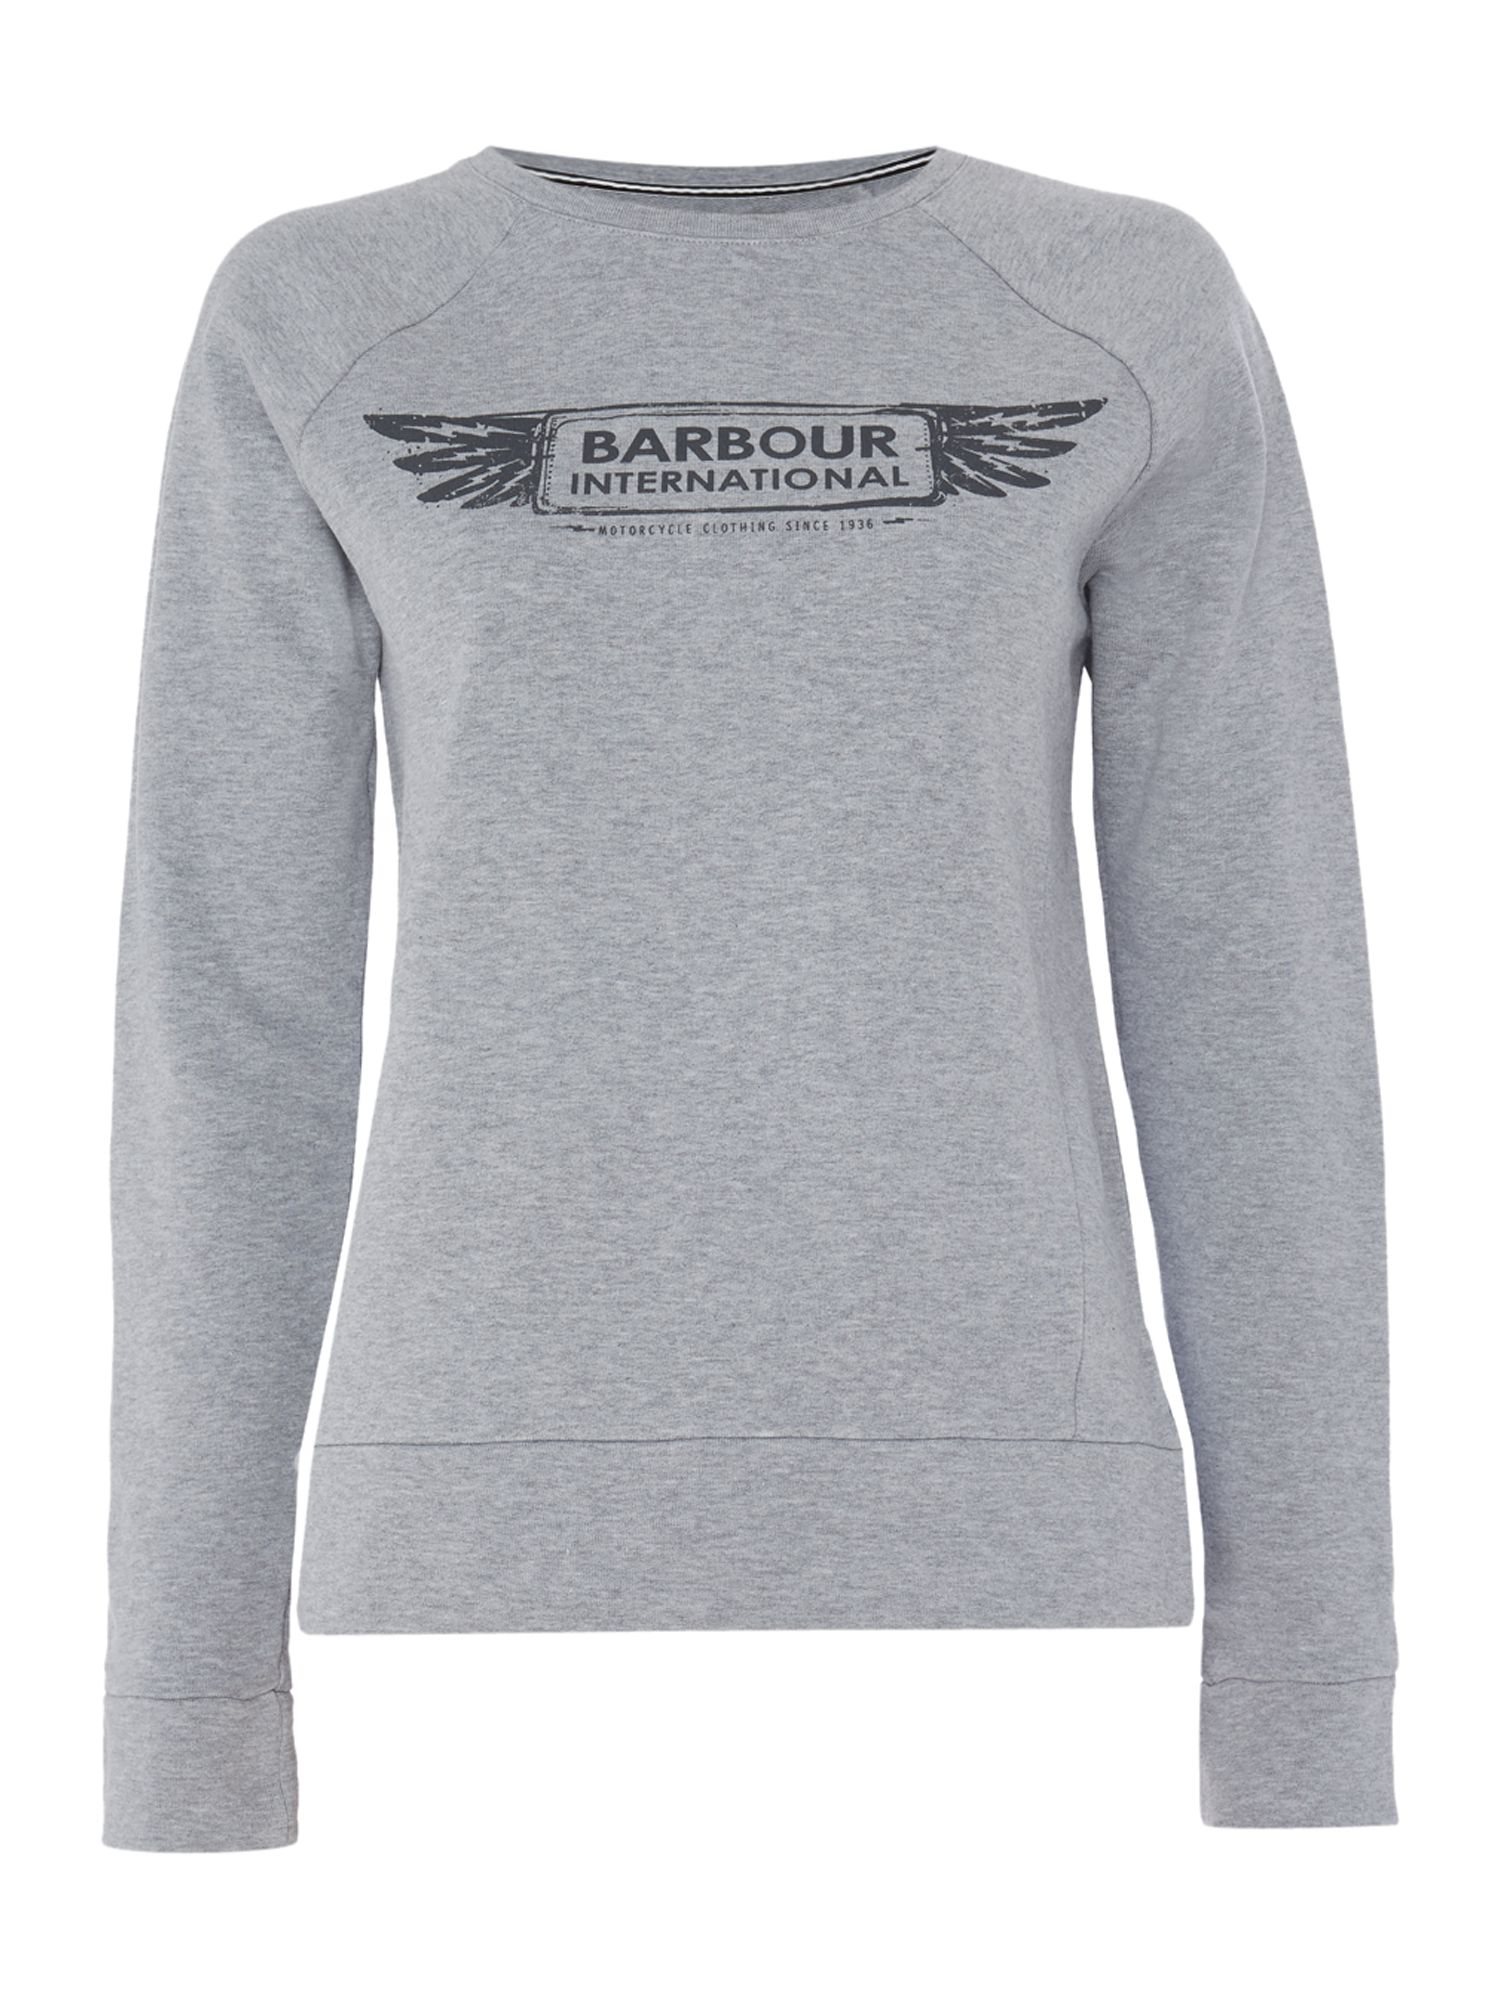 Barbour Barbour international logo sweat Grey